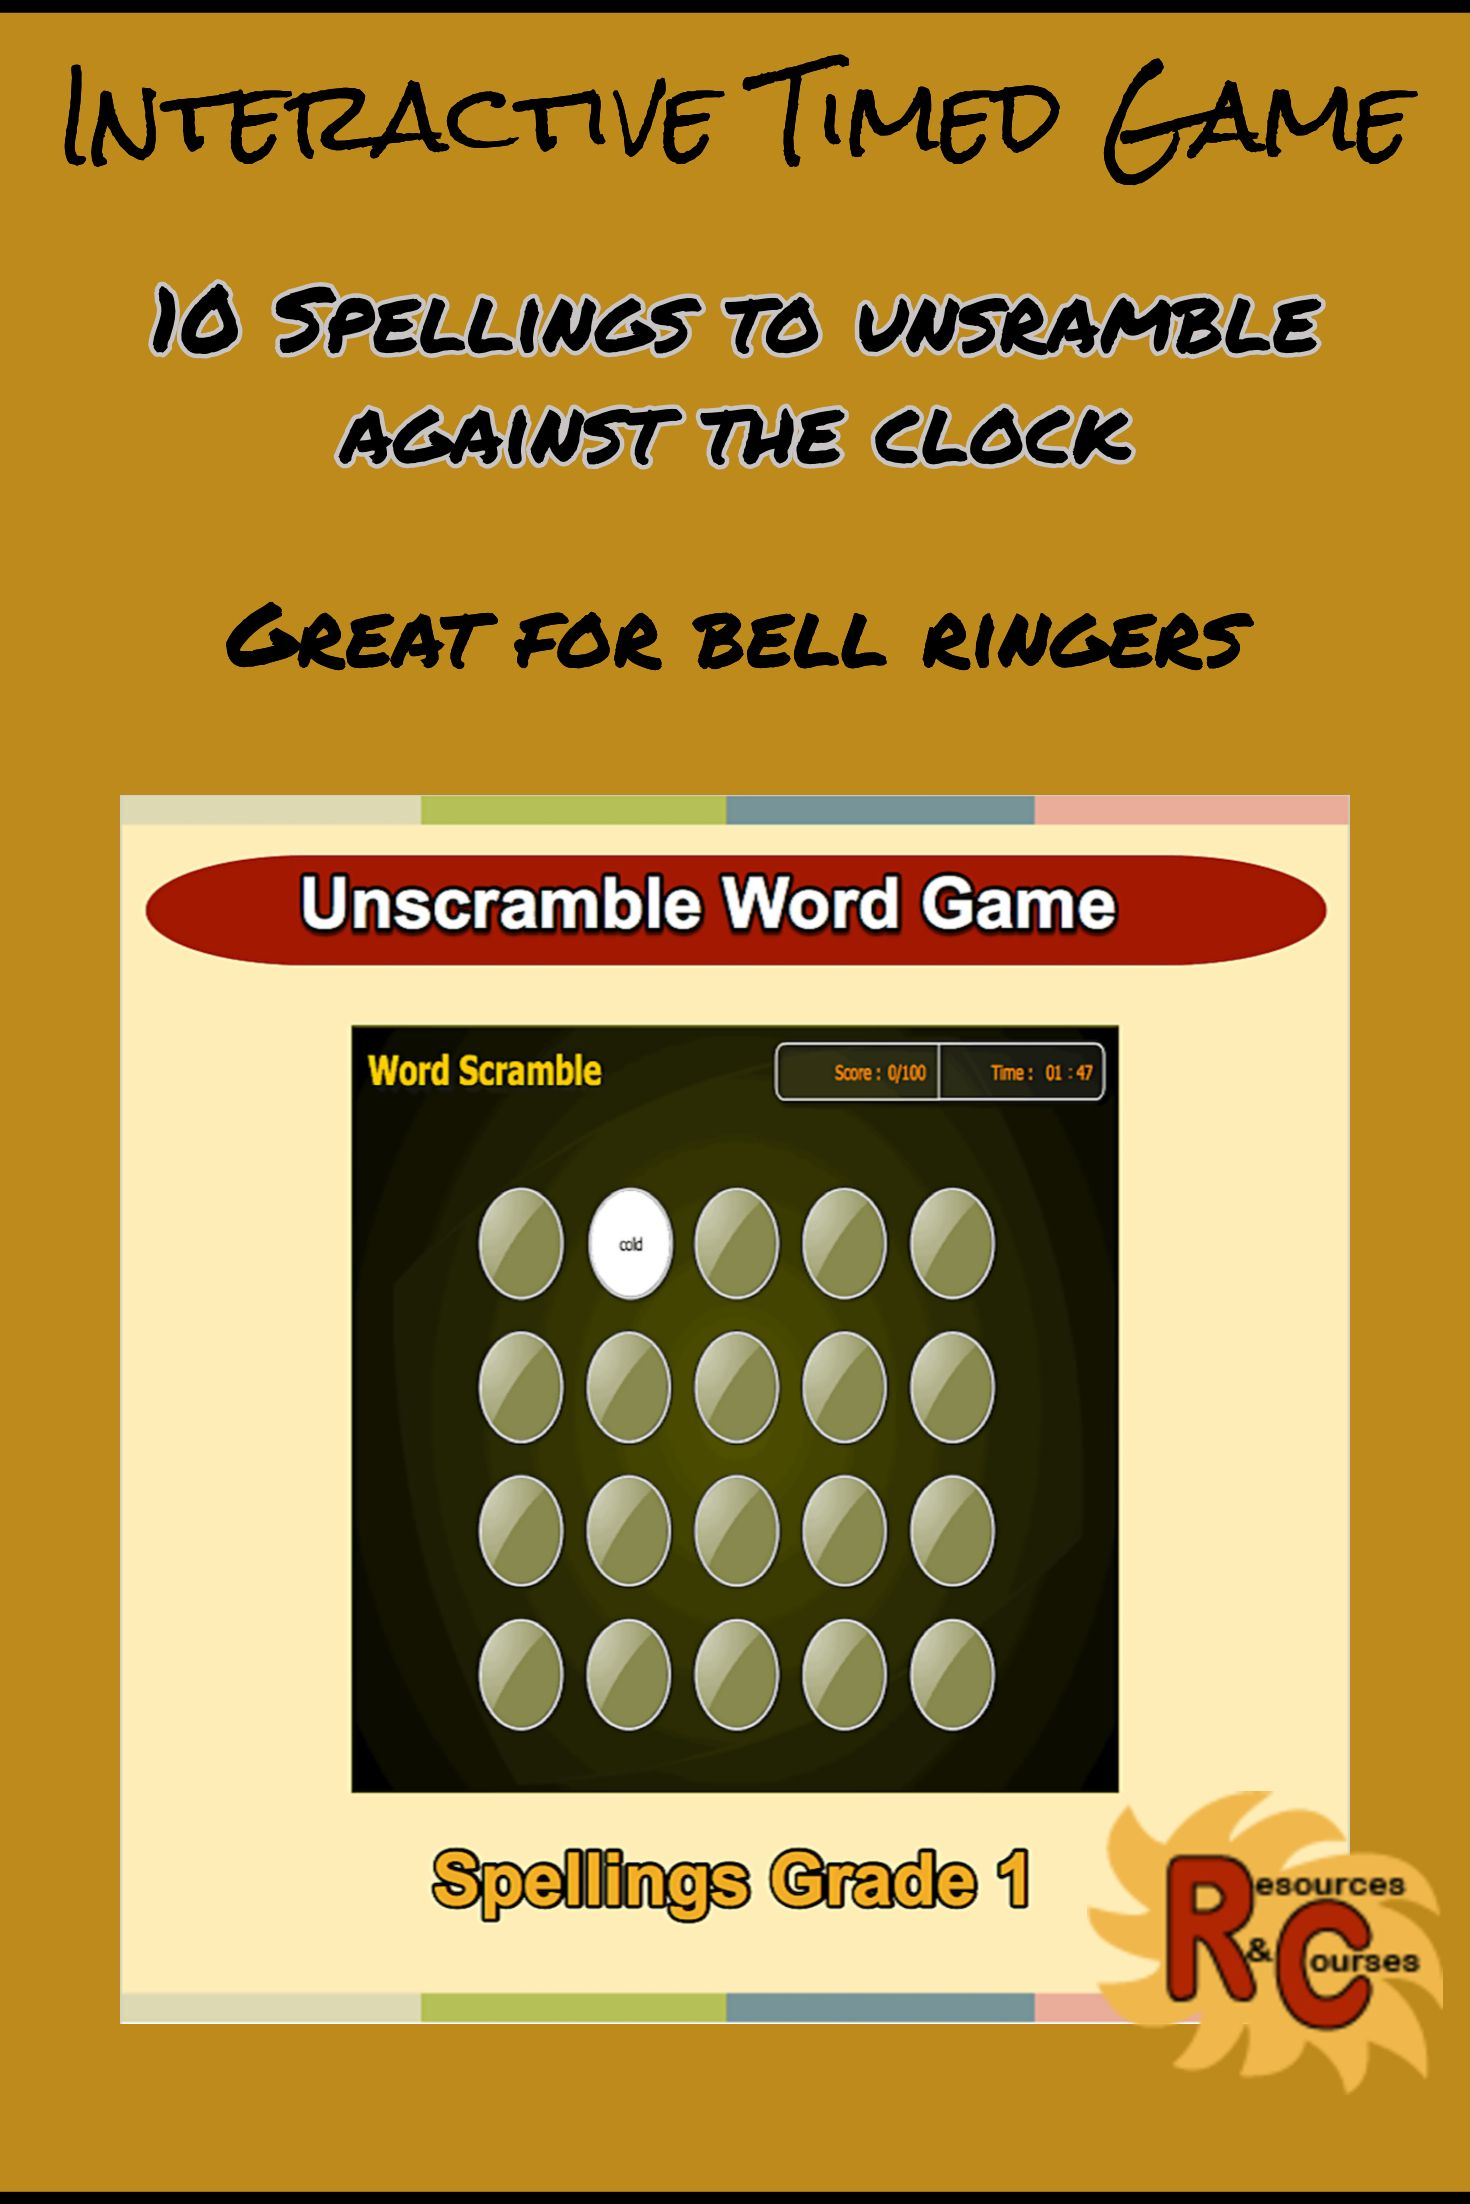 Grade 1 Spellings Word Scramble Game For Kids Unscramble